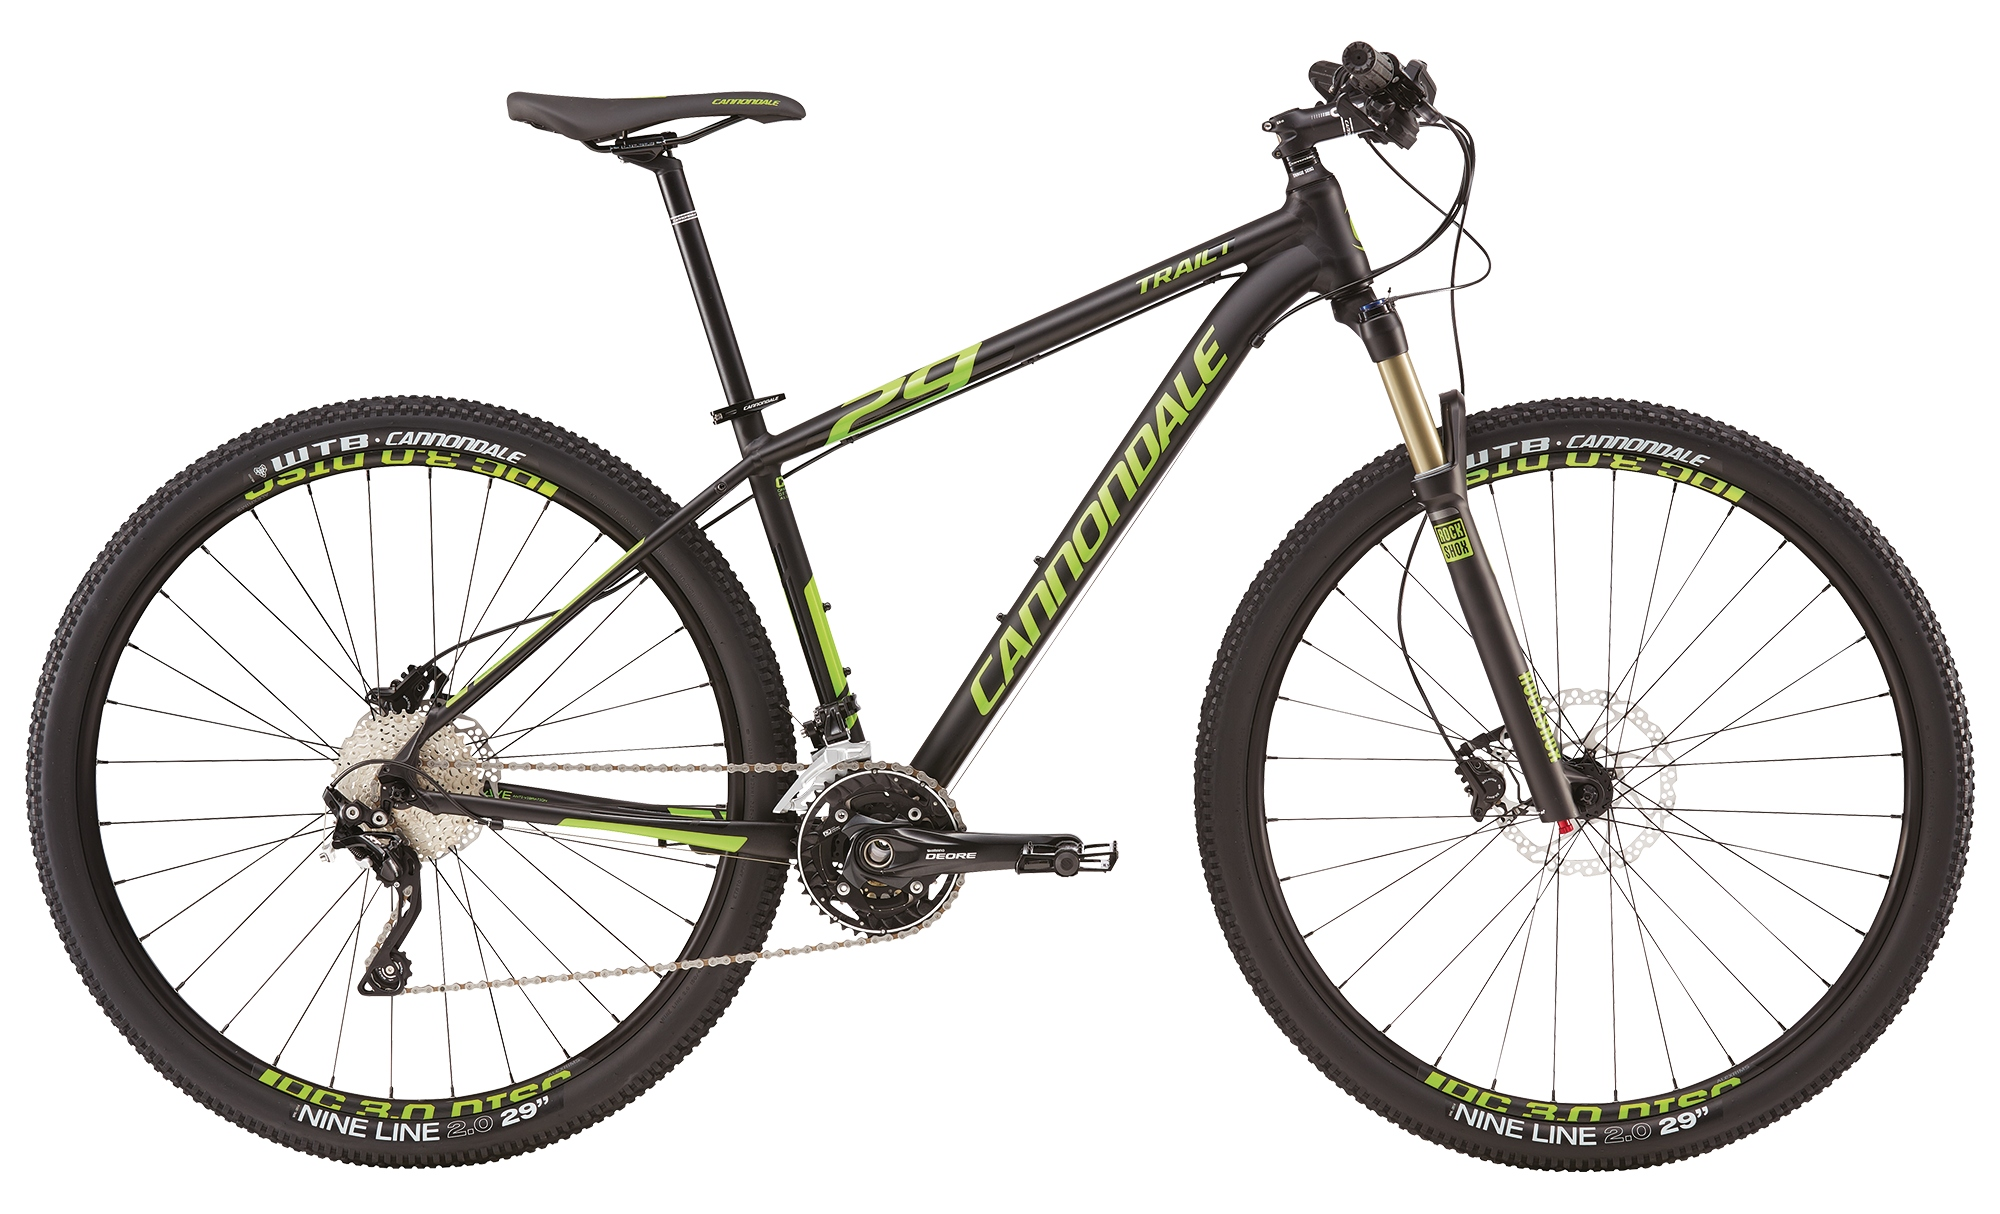 NOWY!! ROWER CANNONDALE TRAIL 29 L 1 56CM